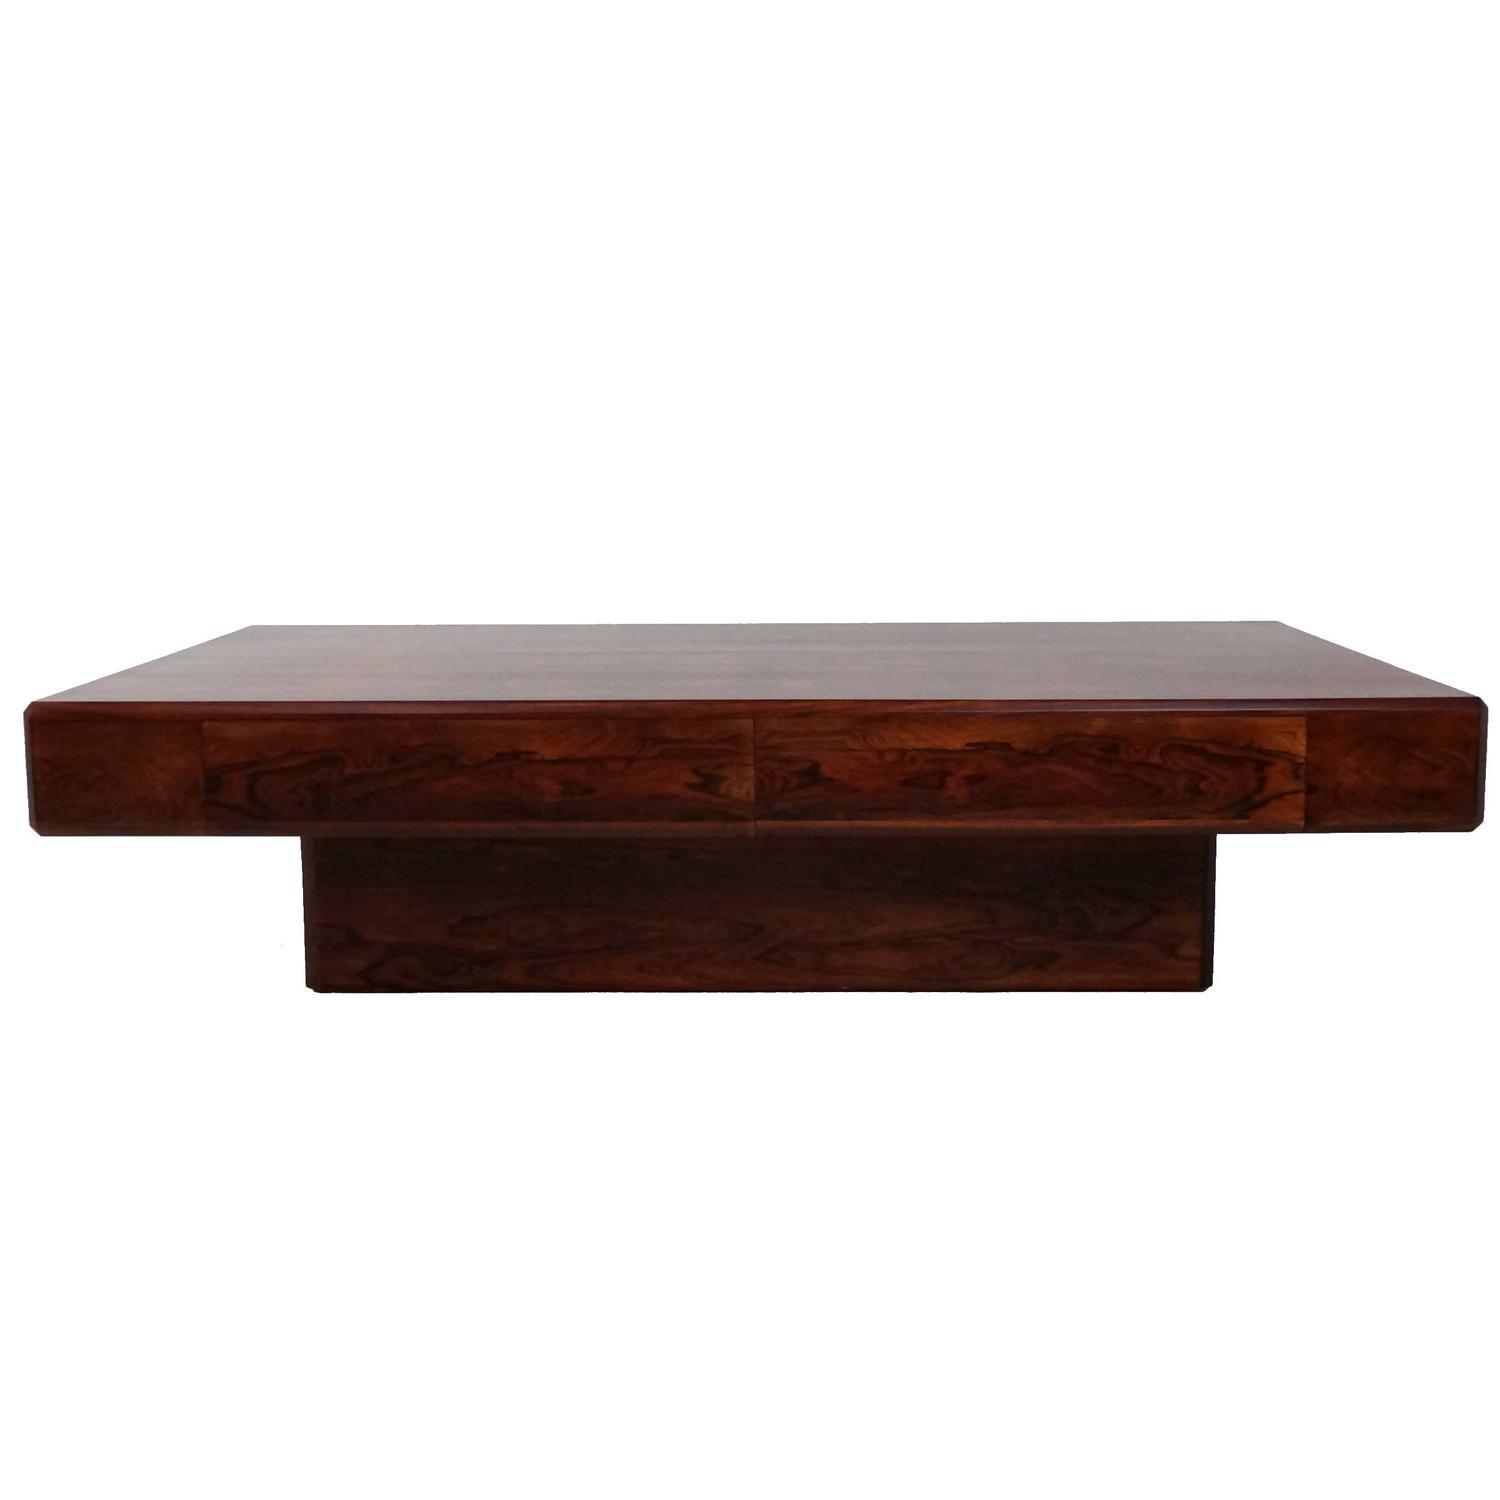 """Low Rio Rosewood """"Ambassador"""" Coffee Table by Howard Keith 1980s"""